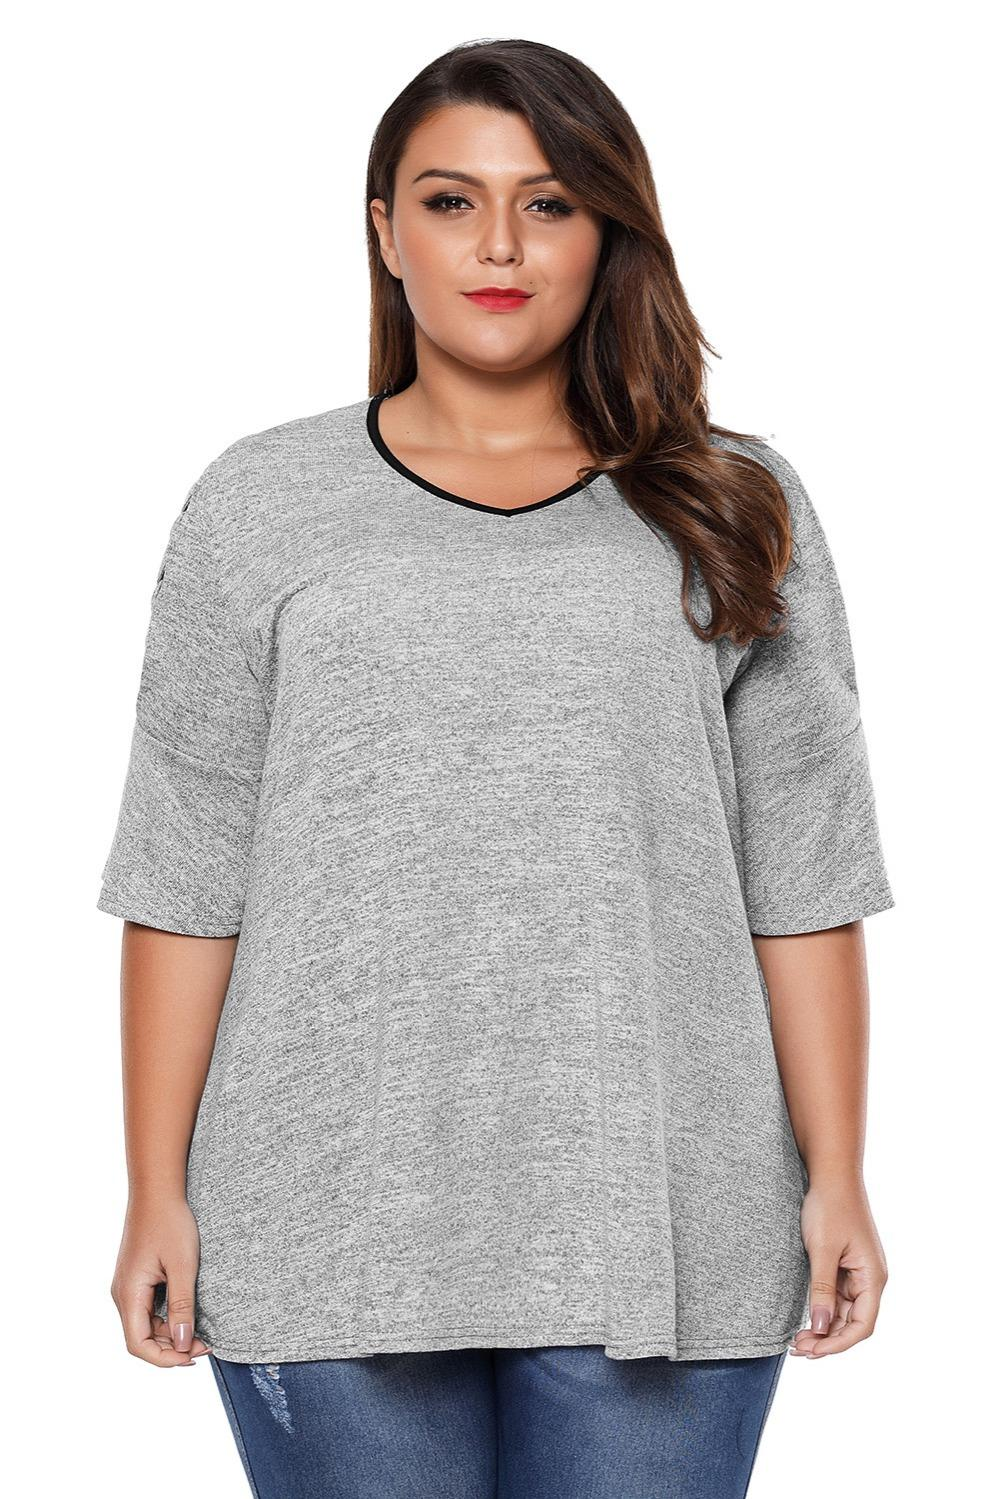 87545b3e58805 Plus Size T Shirt Lace Up Cold Shoulder Top Casual Fashion Summer O Neck  Short Sleeve Ladies T Shirt Grey 2018 LC25086 Awesome Tshirt Designs 10 T  Shirts ...